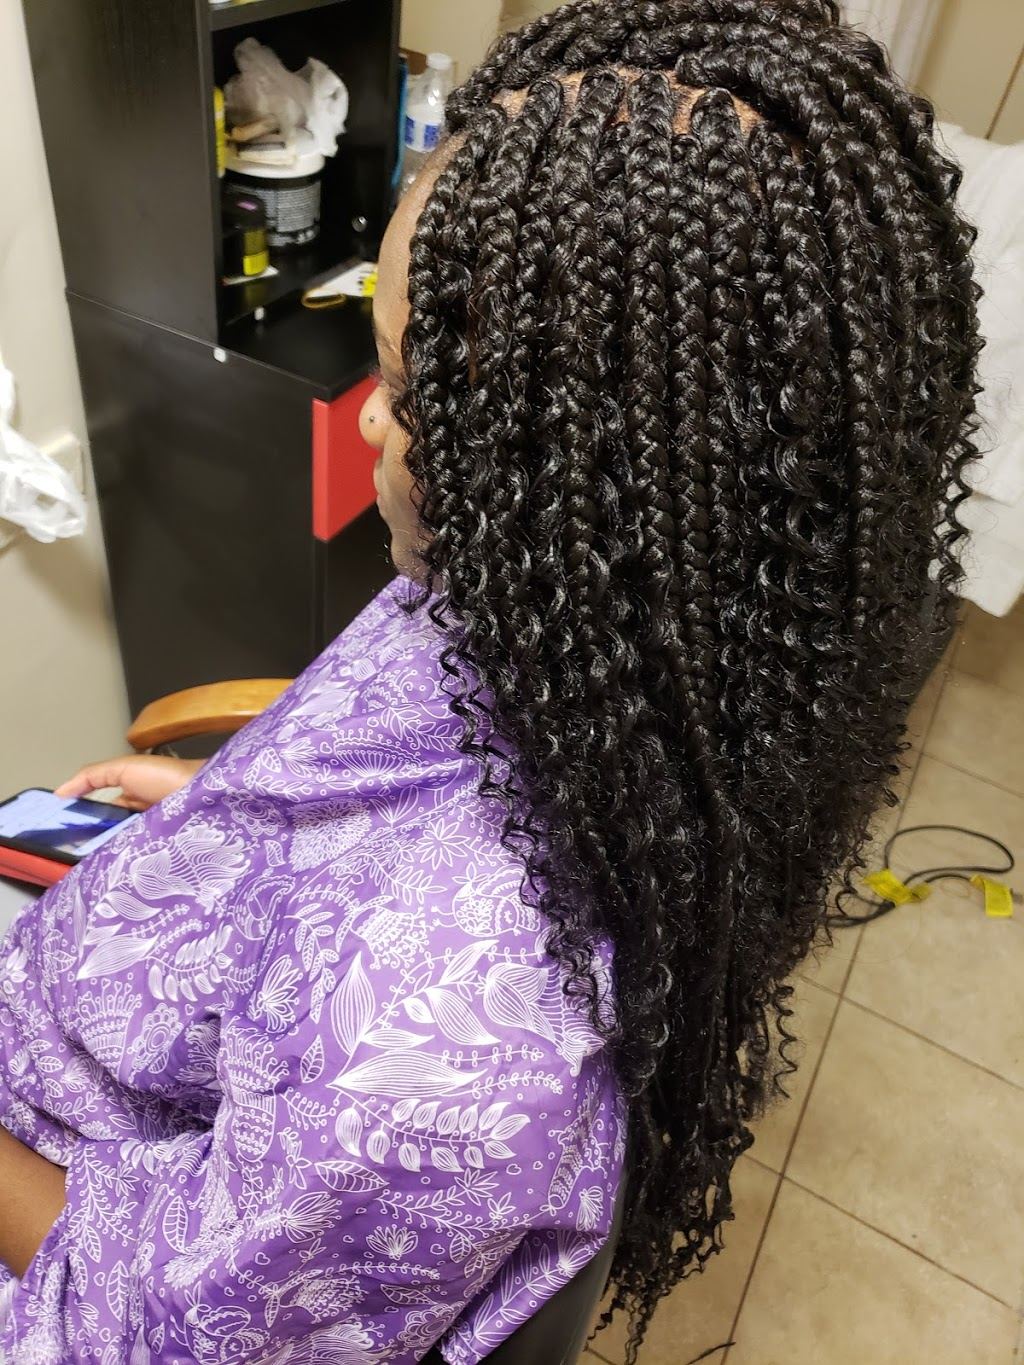 Flakky African Hair Braiding - hair care  | Photo 8 of 10 | Address: 253 Broad St, Staten Island, NY 10304, USA | Phone: (347) 371-3645